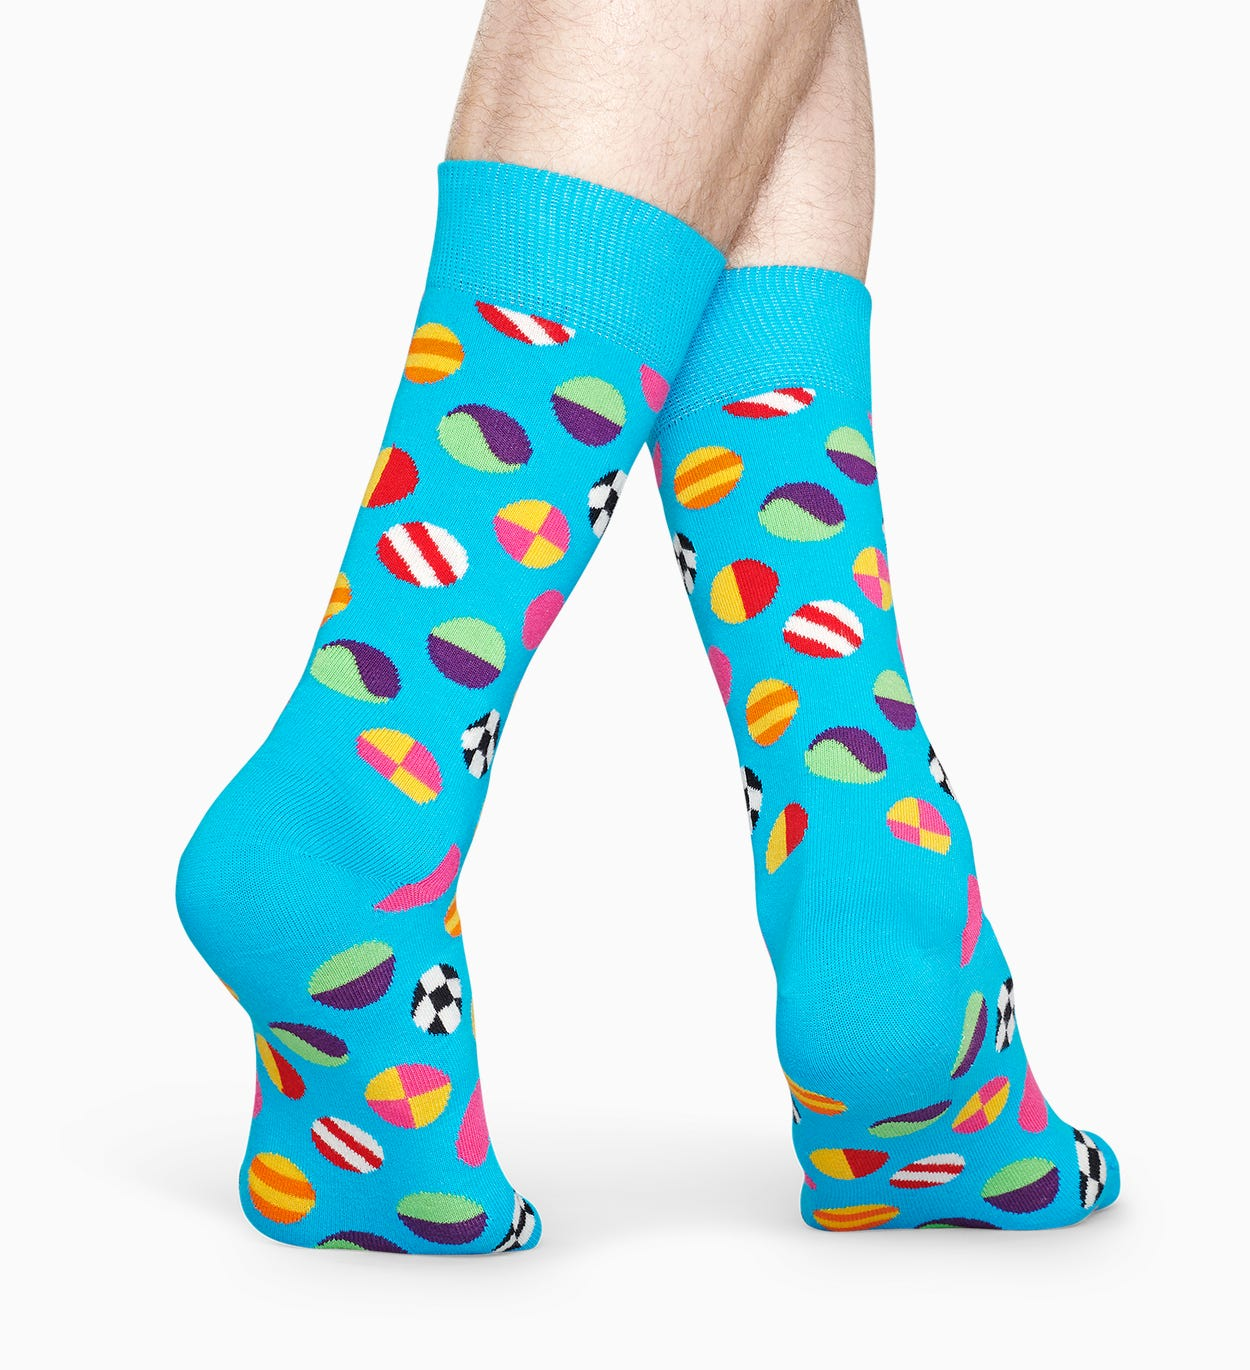 Patterned Blue Socks: Clashing Dot | Happy Socks